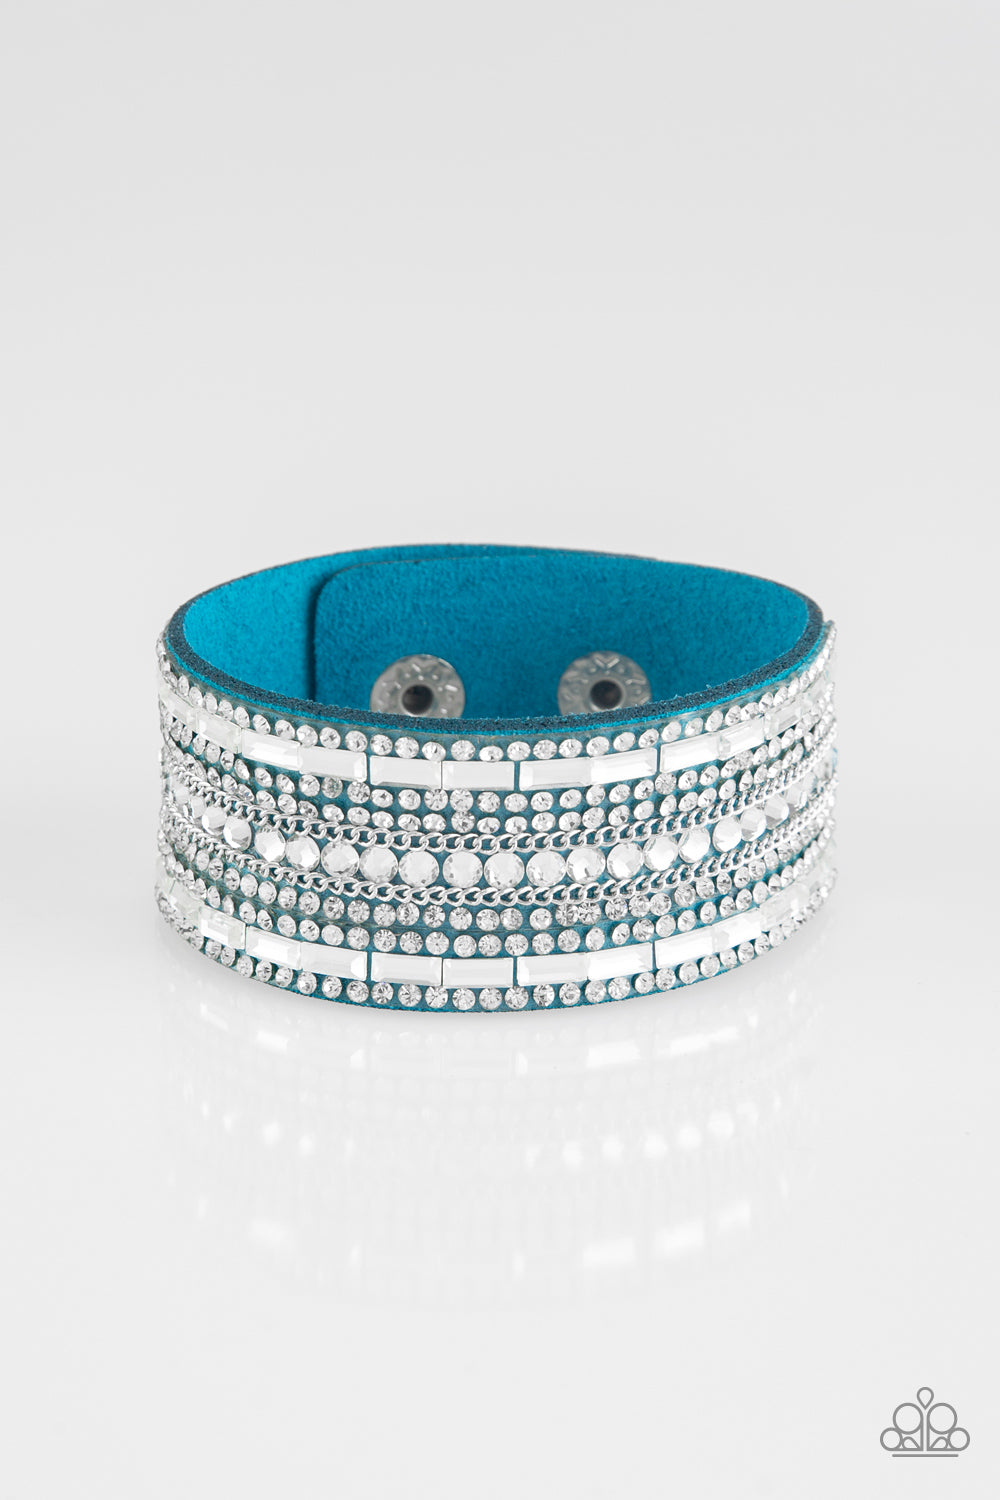 Paparazzi Accessories - Rebel Radiance - Blue Bracelets - JMJ Jewelry Collection